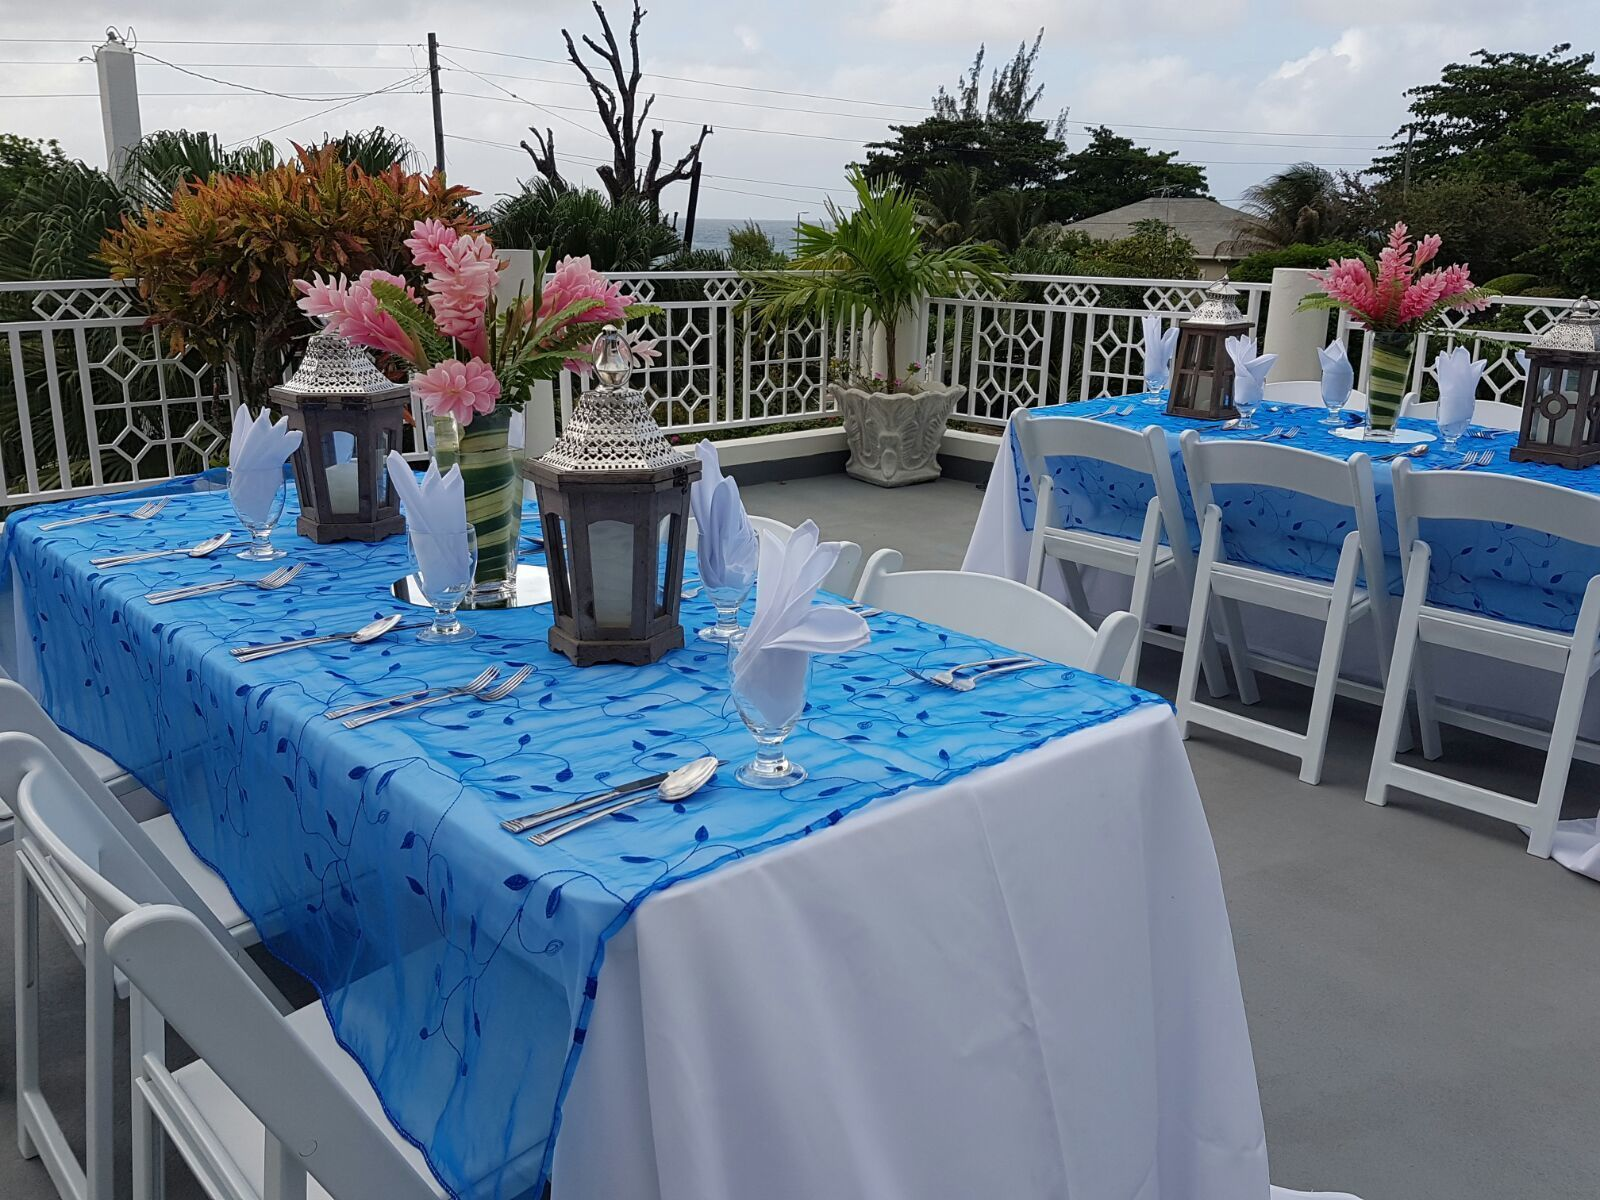 Wedding villas in Jamaica should offer multiple venue options. The lower level roof deck at Mais Oui Tennis and Spa Villa in Discovery Bay Jamaica. A wedding designer's dream for versatility.